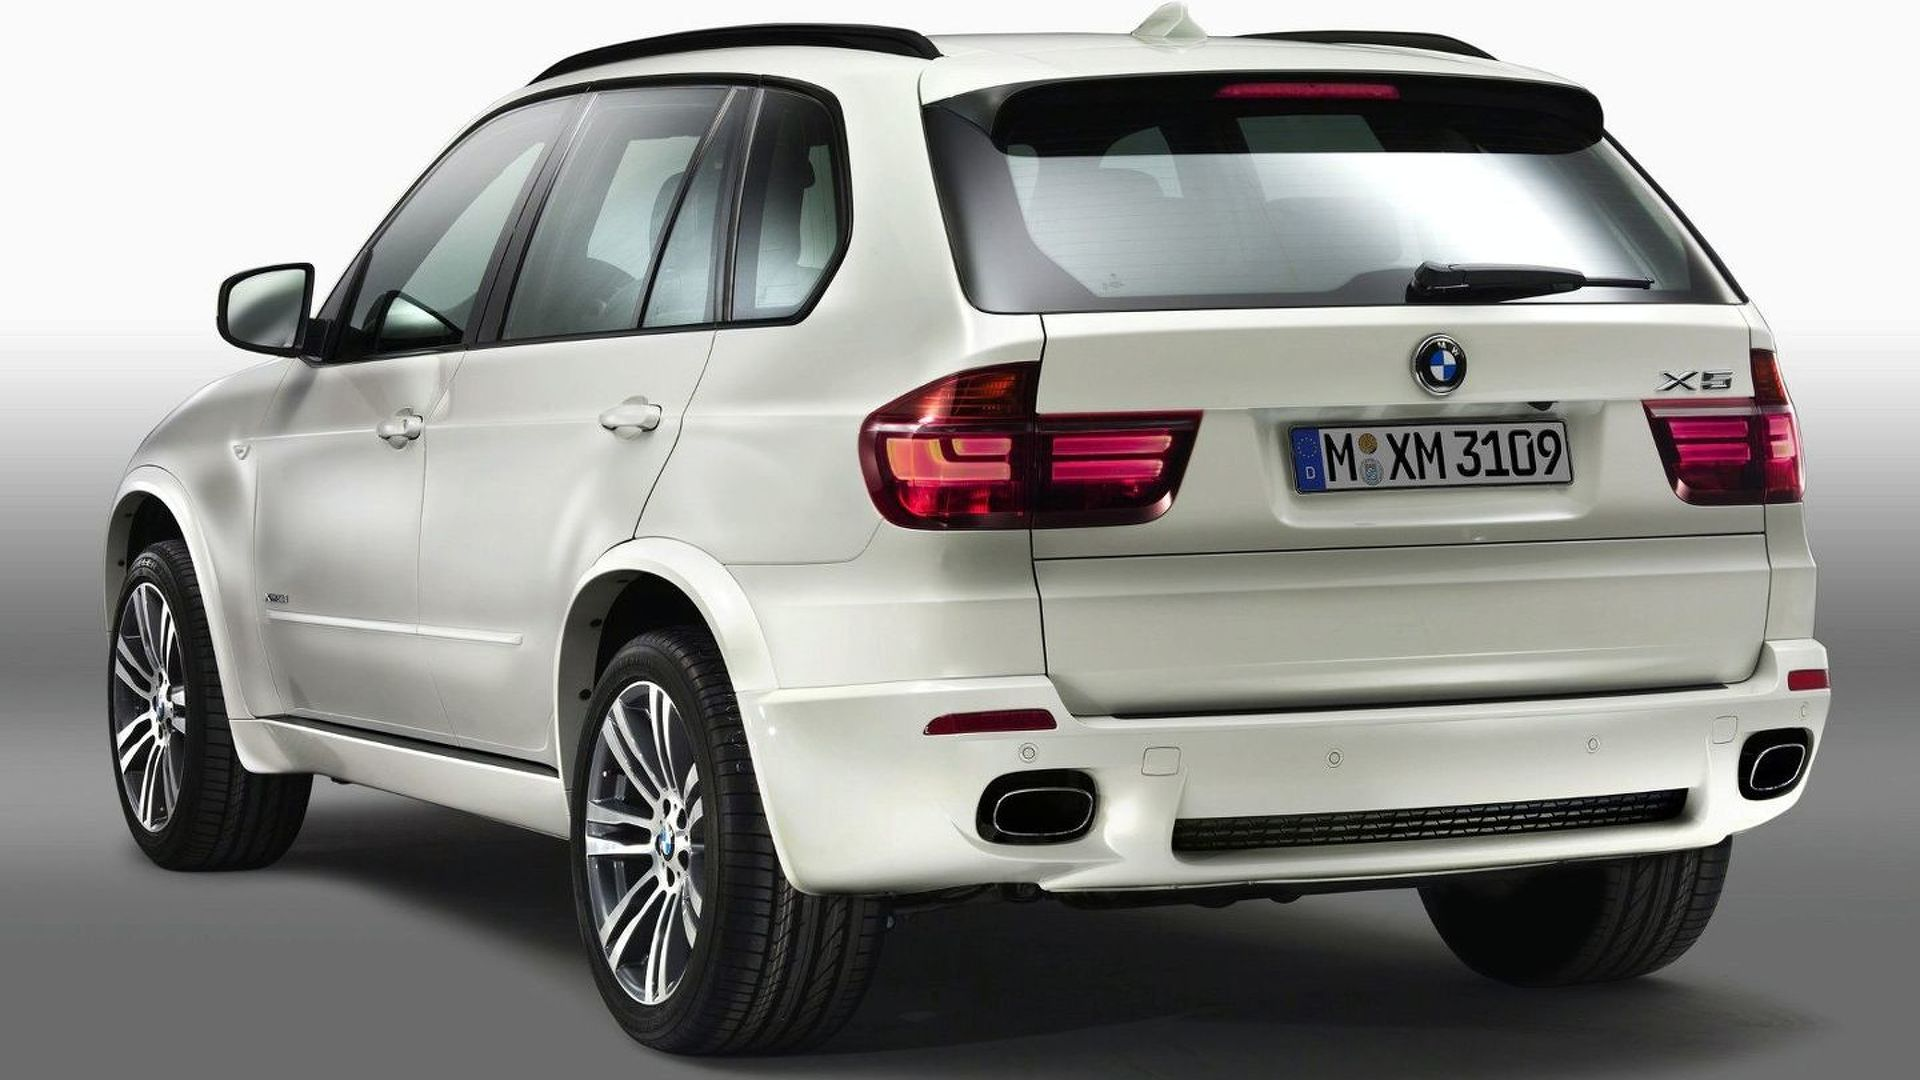 2011 bmw x5 facelift with m sport package details and. Black Bedroom Furniture Sets. Home Design Ideas